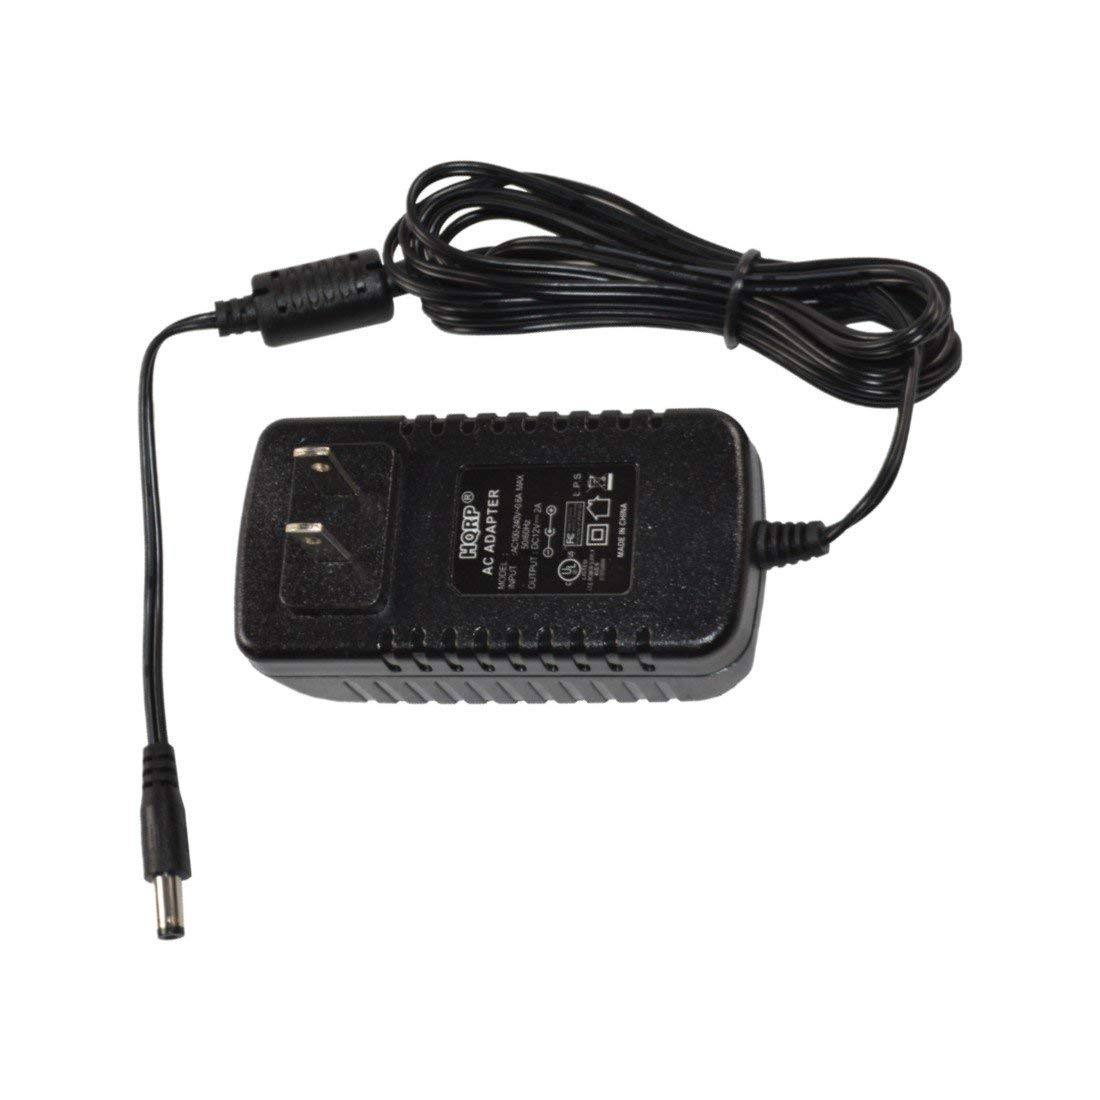 HQRP 12V AC Adapter/Power Supply for SWANN PRO-580 - Multi-Purpose Day/Night Security Camera - Night Vision 65ft / 20m; SWPRO-580CAM [UL Listed] Plus HQRP Euro Plug Adapter